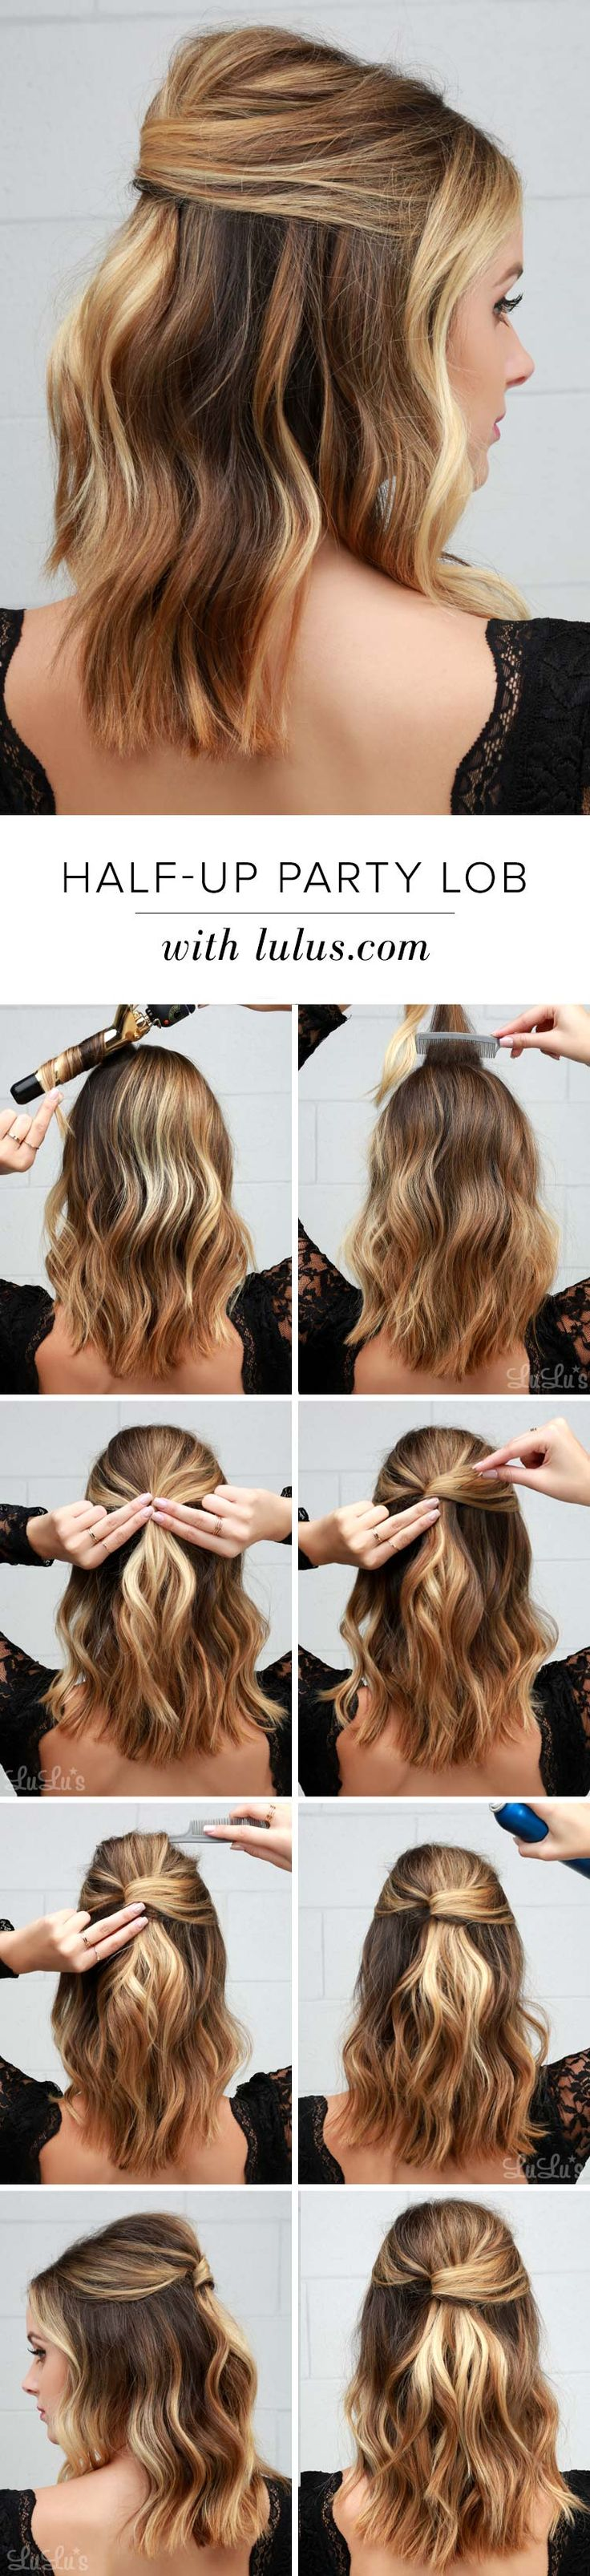 Lulus How-To: Half-Up Party Lob!